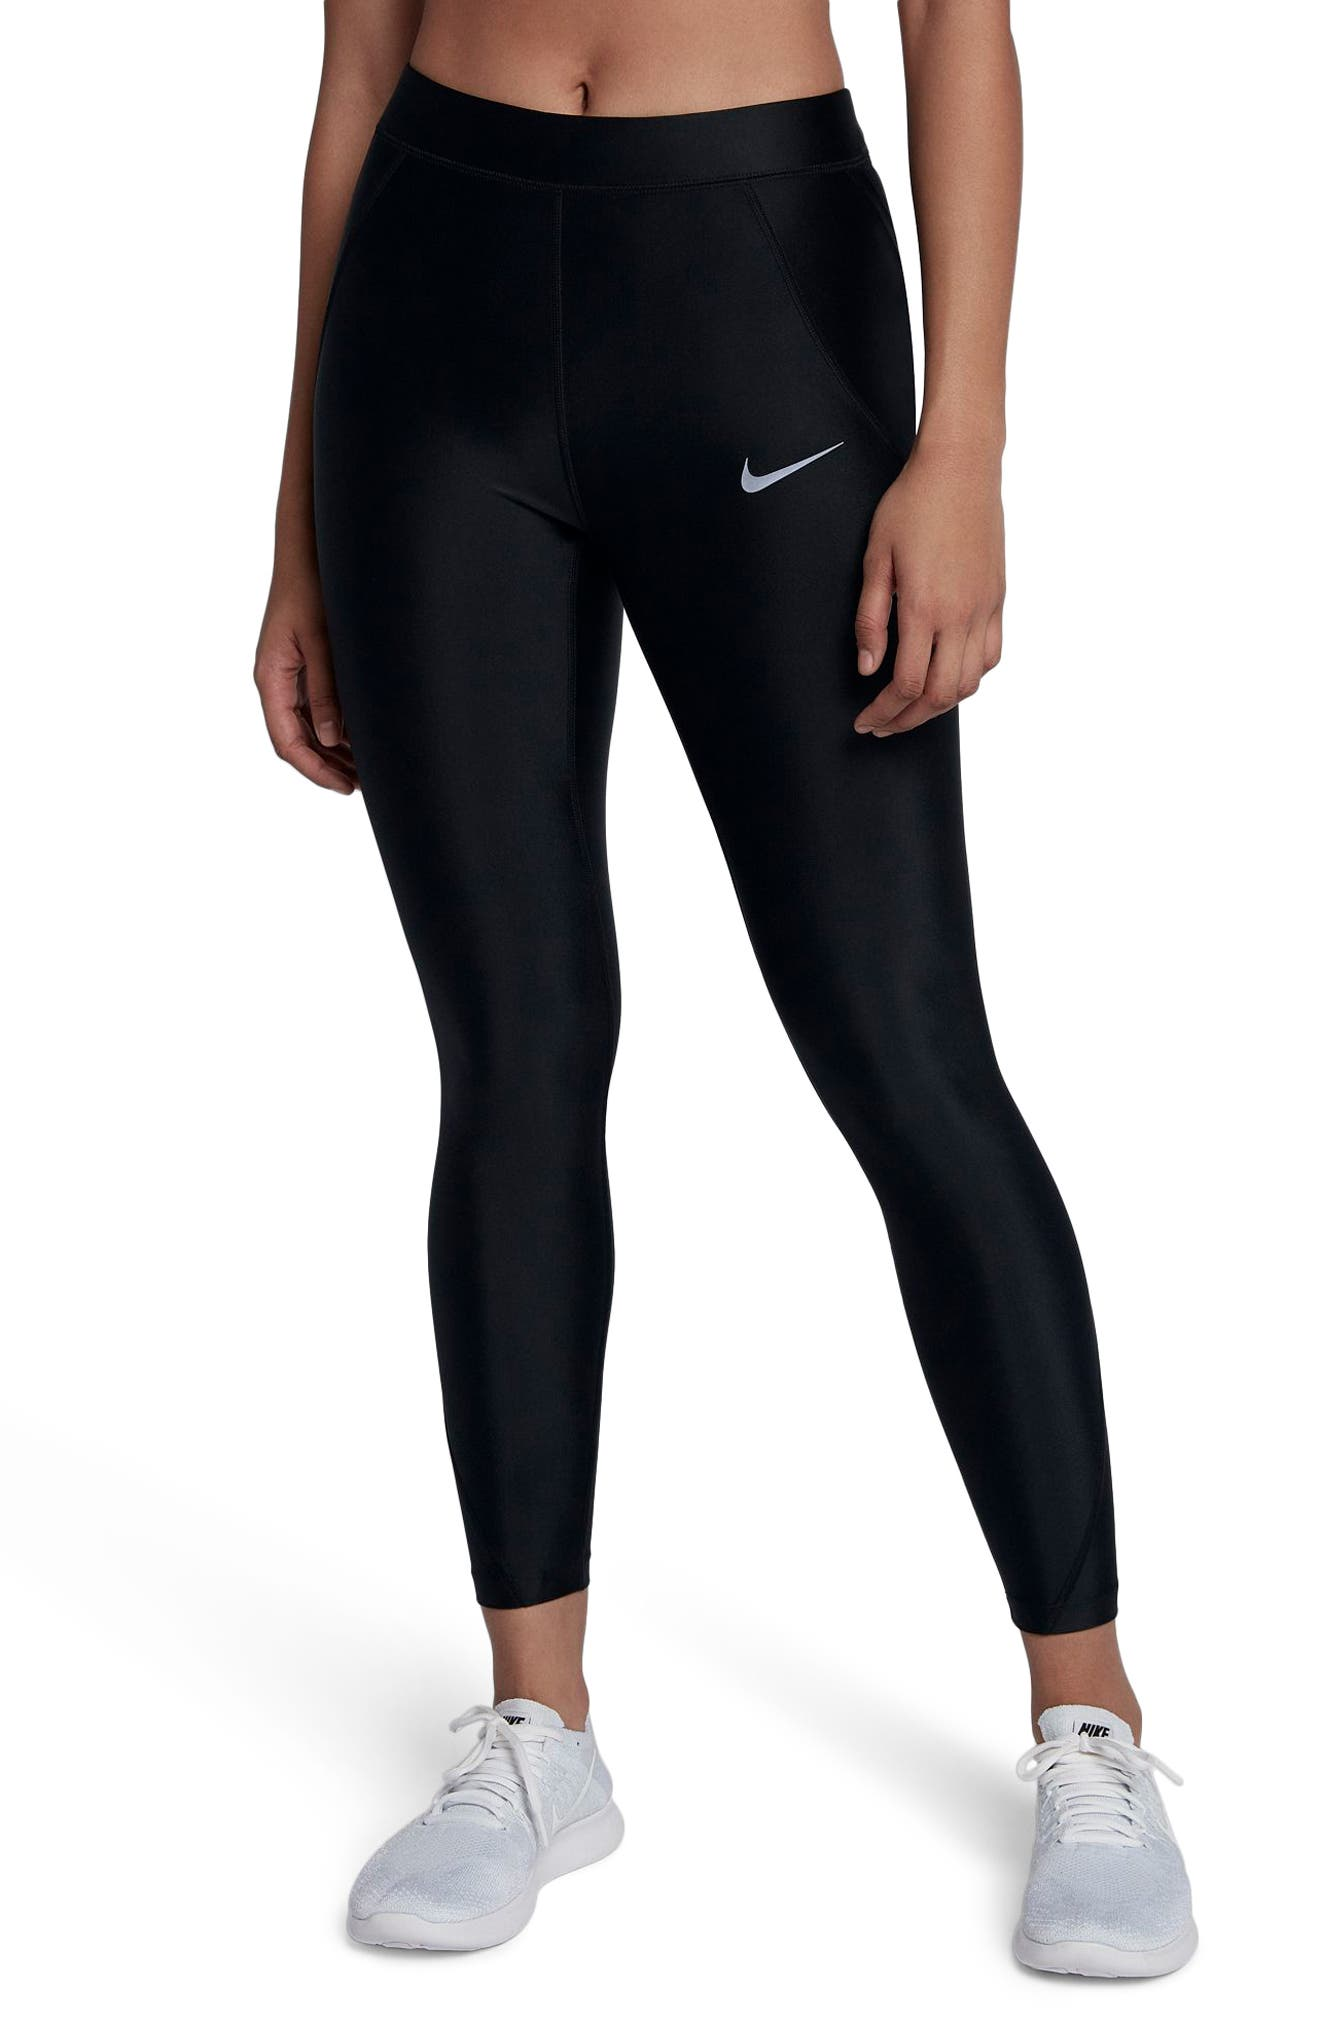 Power Speed 7/8 Running Tights by Nike